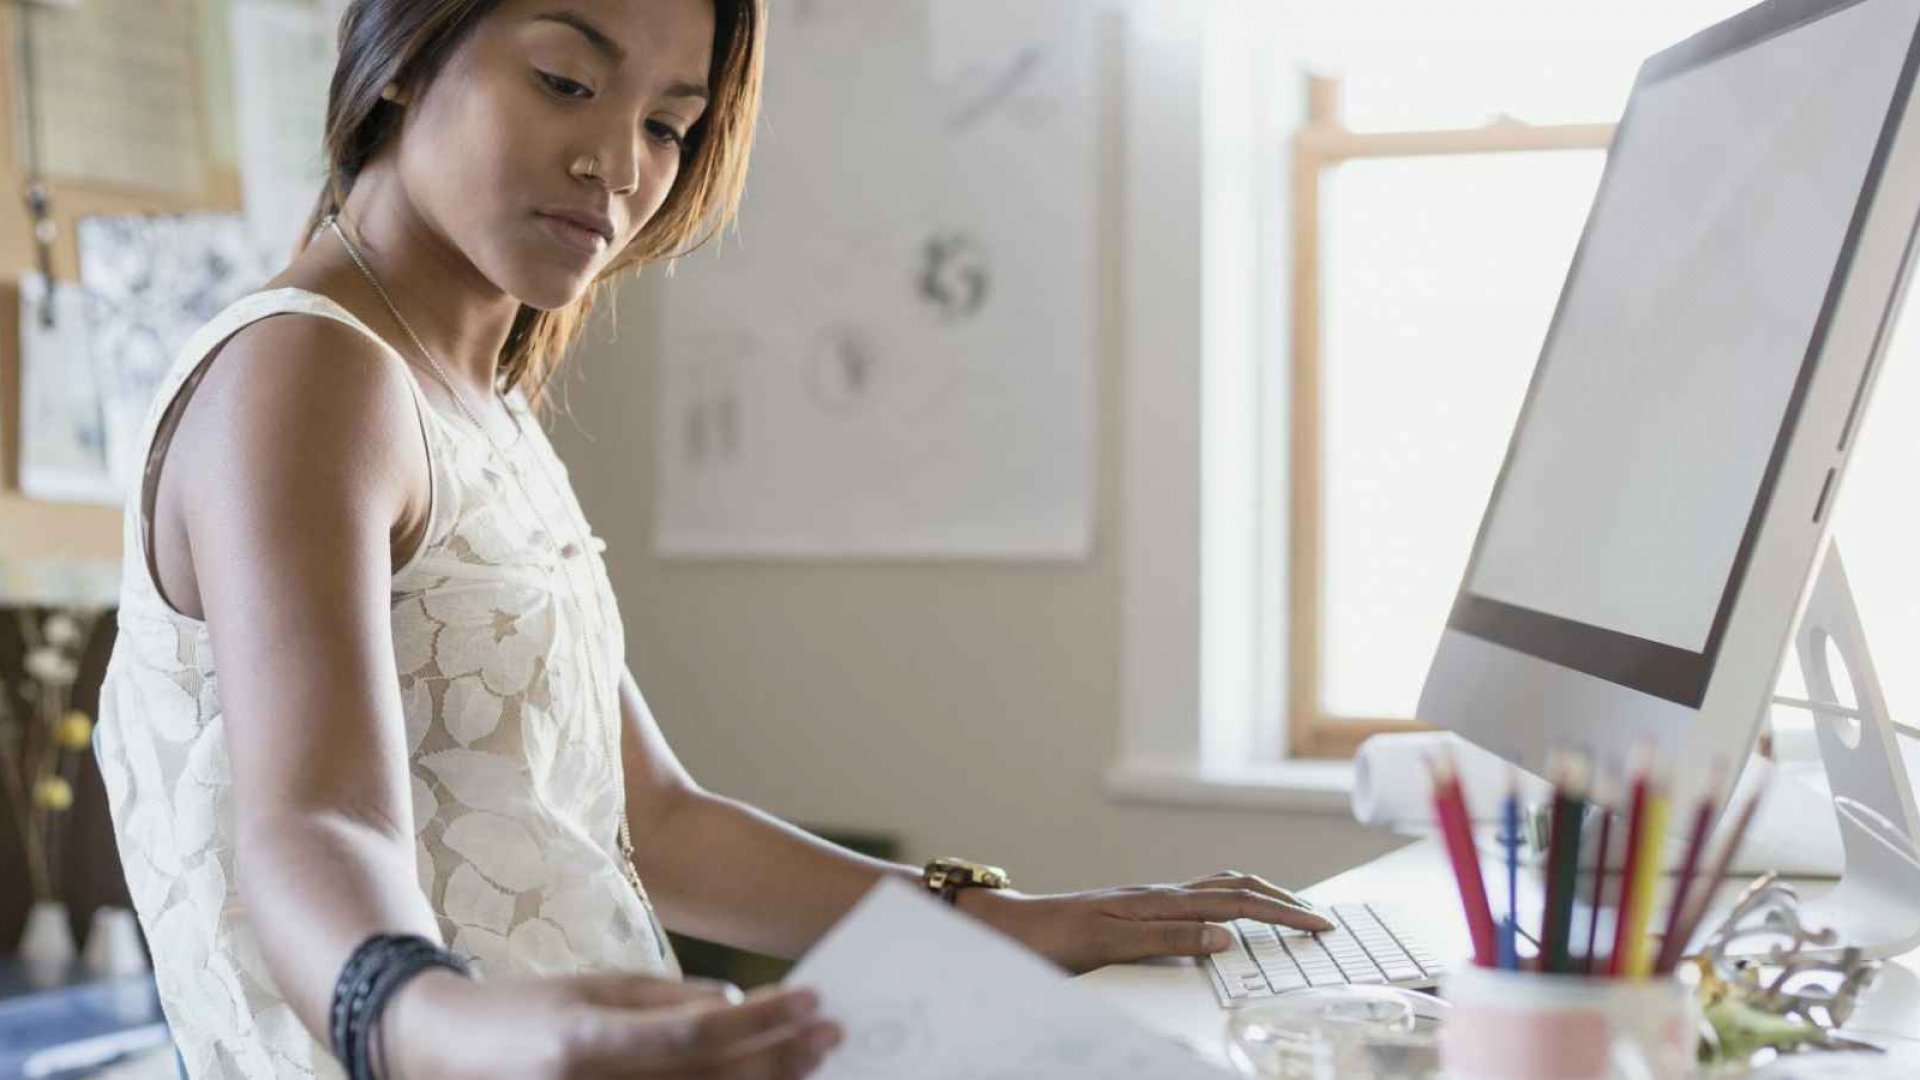 How to Work More Productively When Working From Home